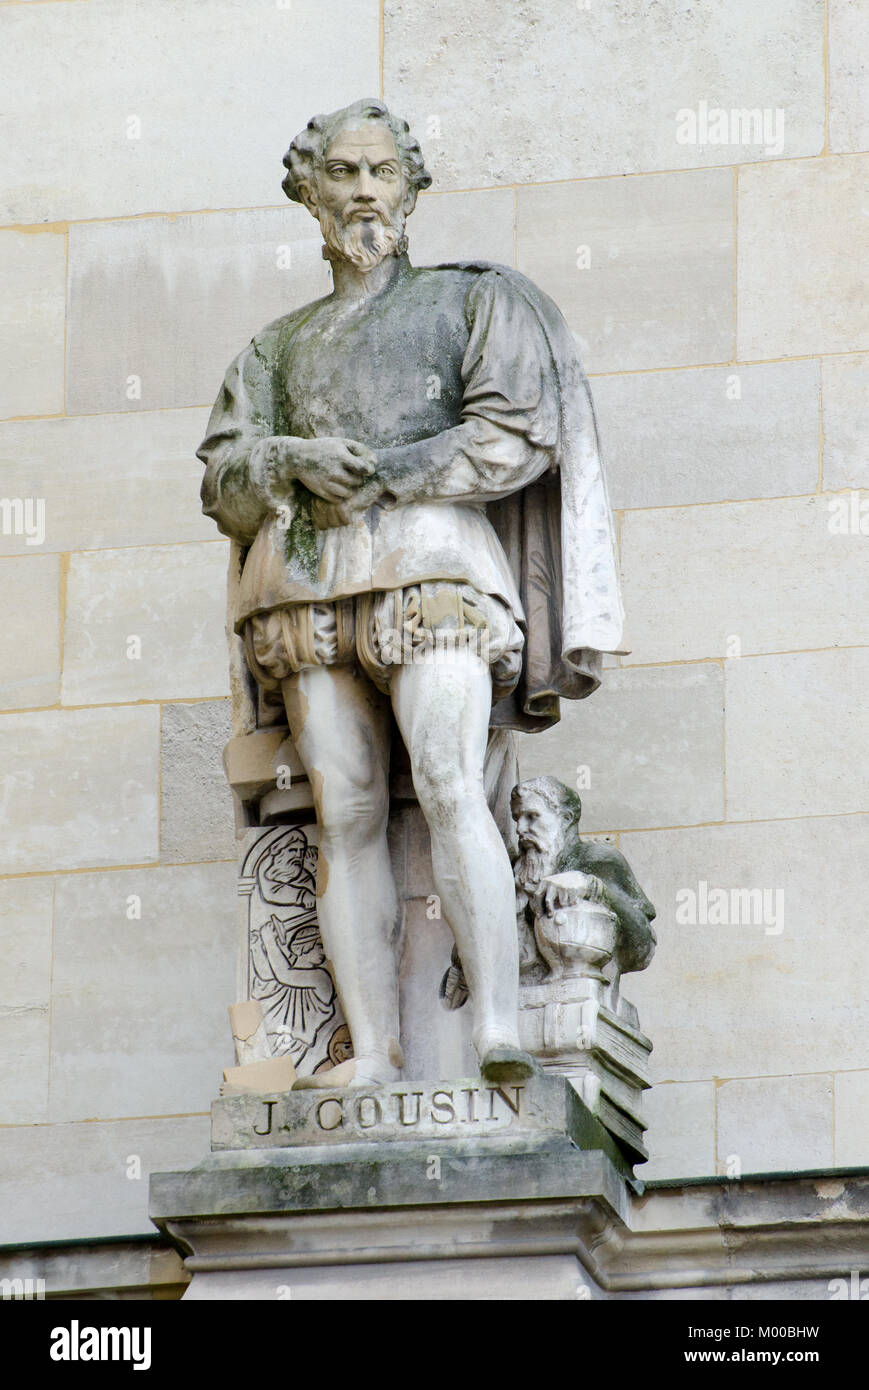 Paris, France. Palais du Louvre. Statue in the Cour Napoleon: Jean Cousin the Elder (c1500-1560) French painter, - Stock Image